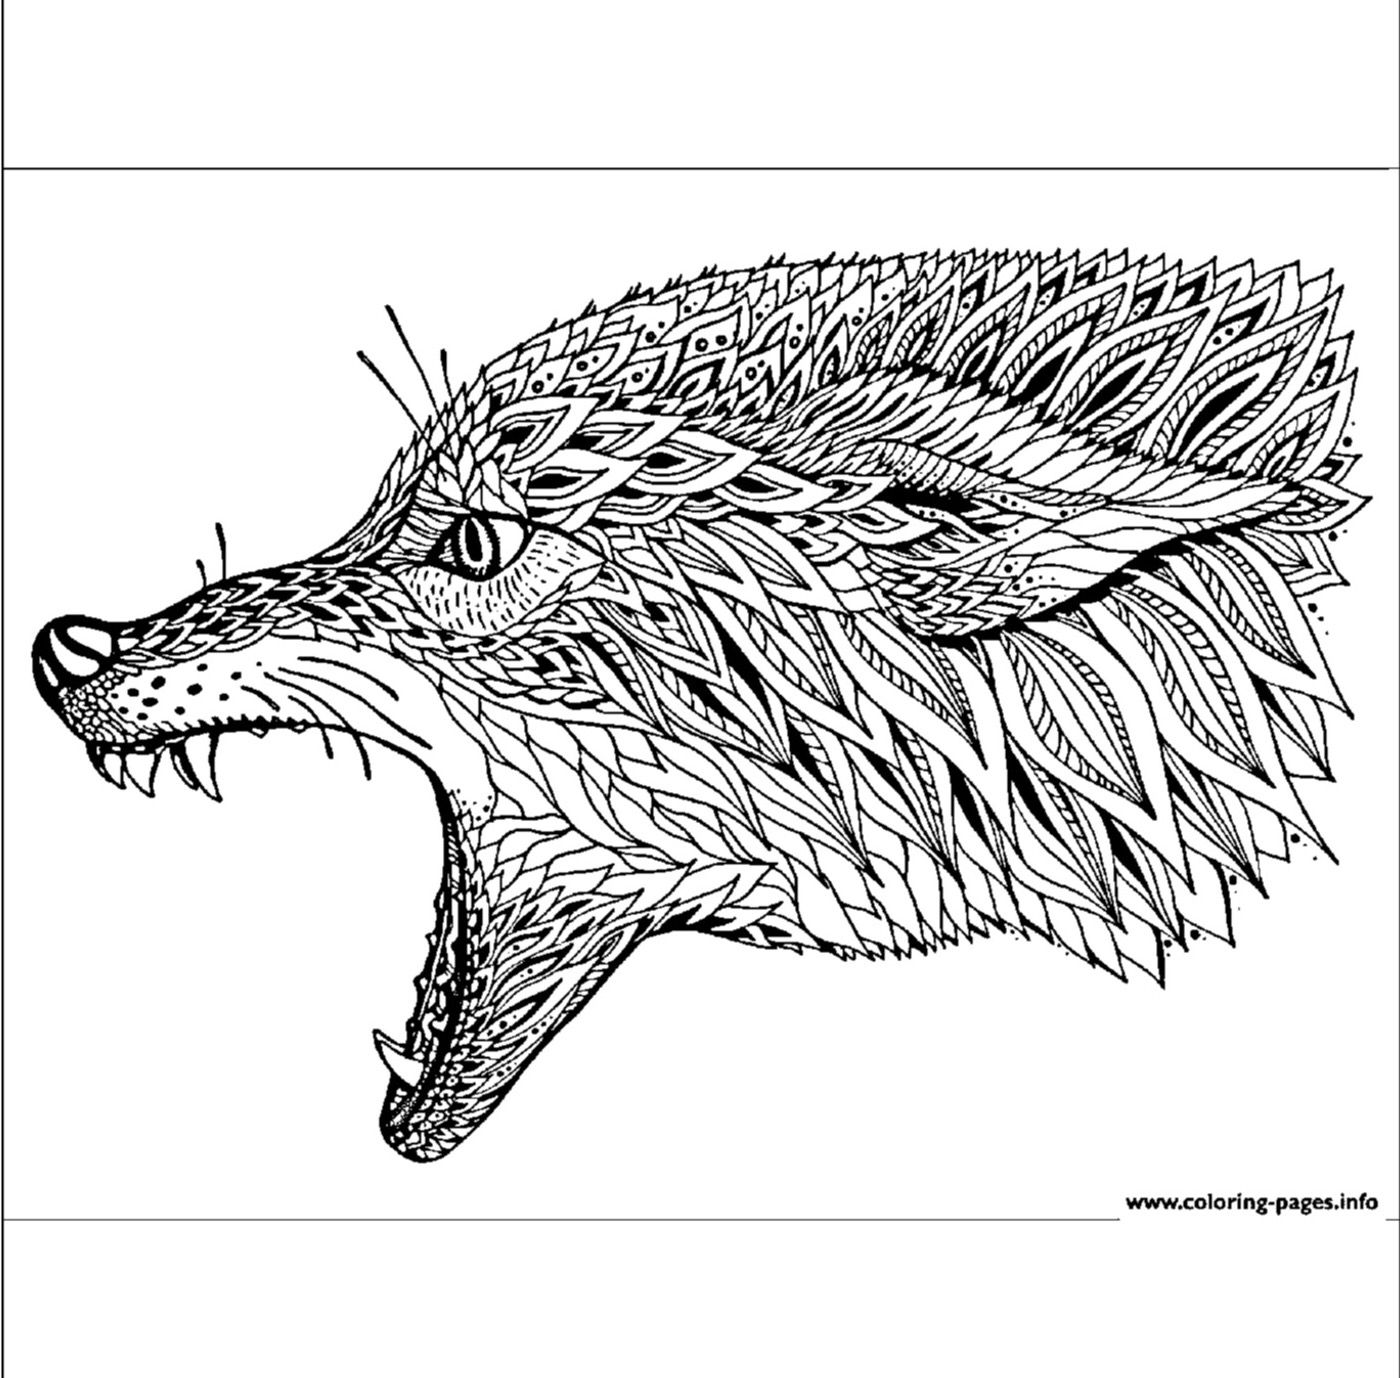 Animal Coloring Pages Coyote Animal Coloring Pages Adult